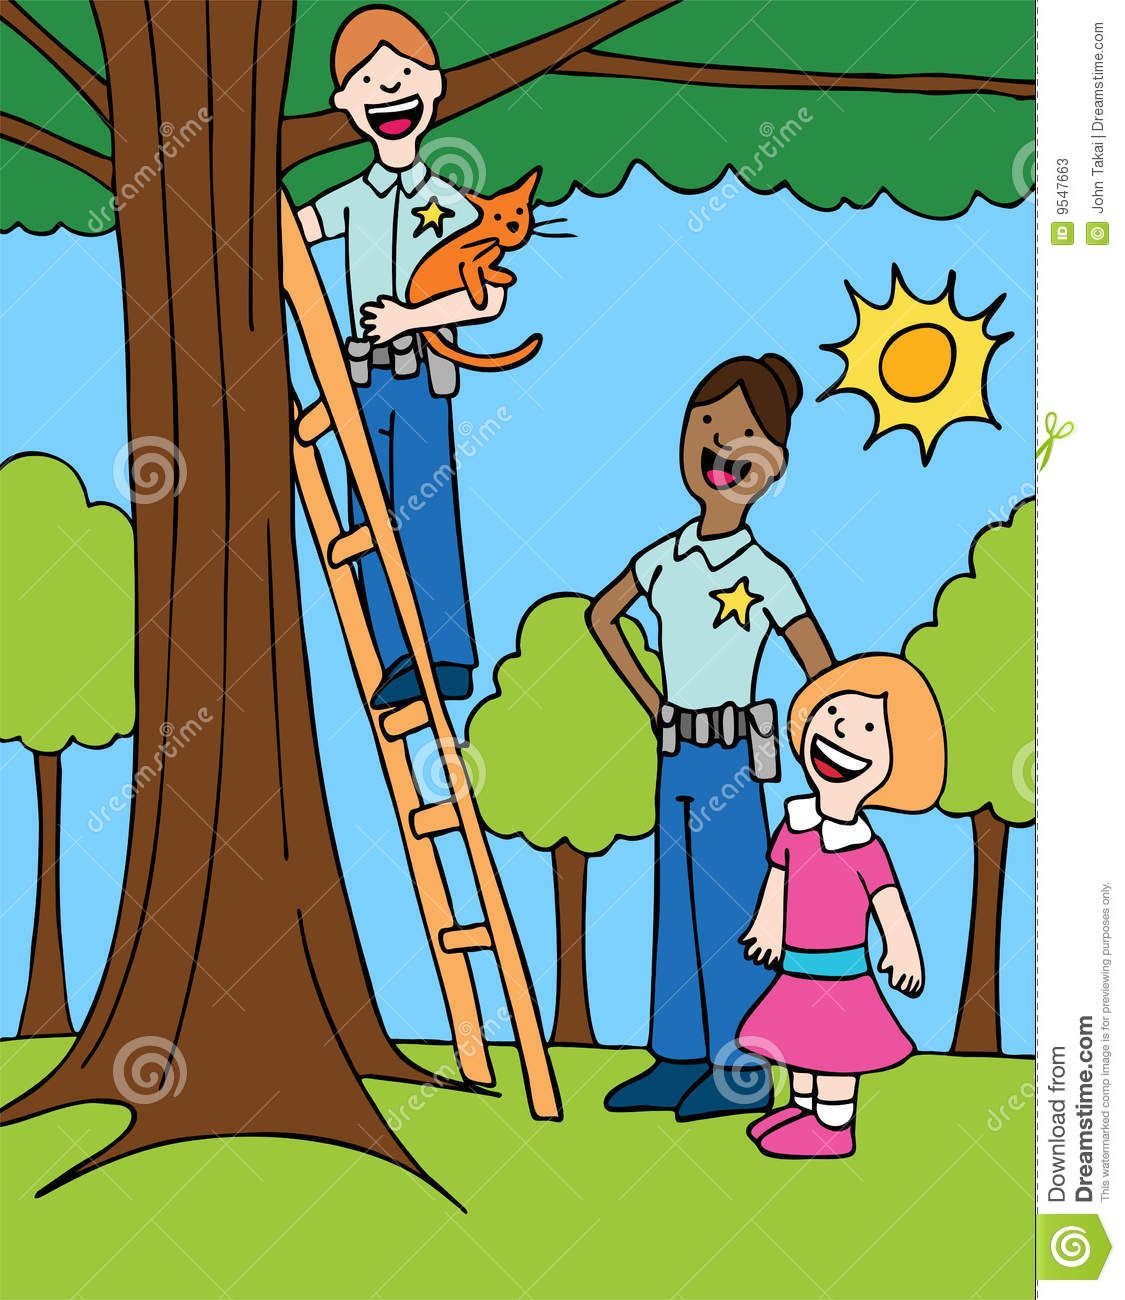 Rescue cat from a tree clipart.